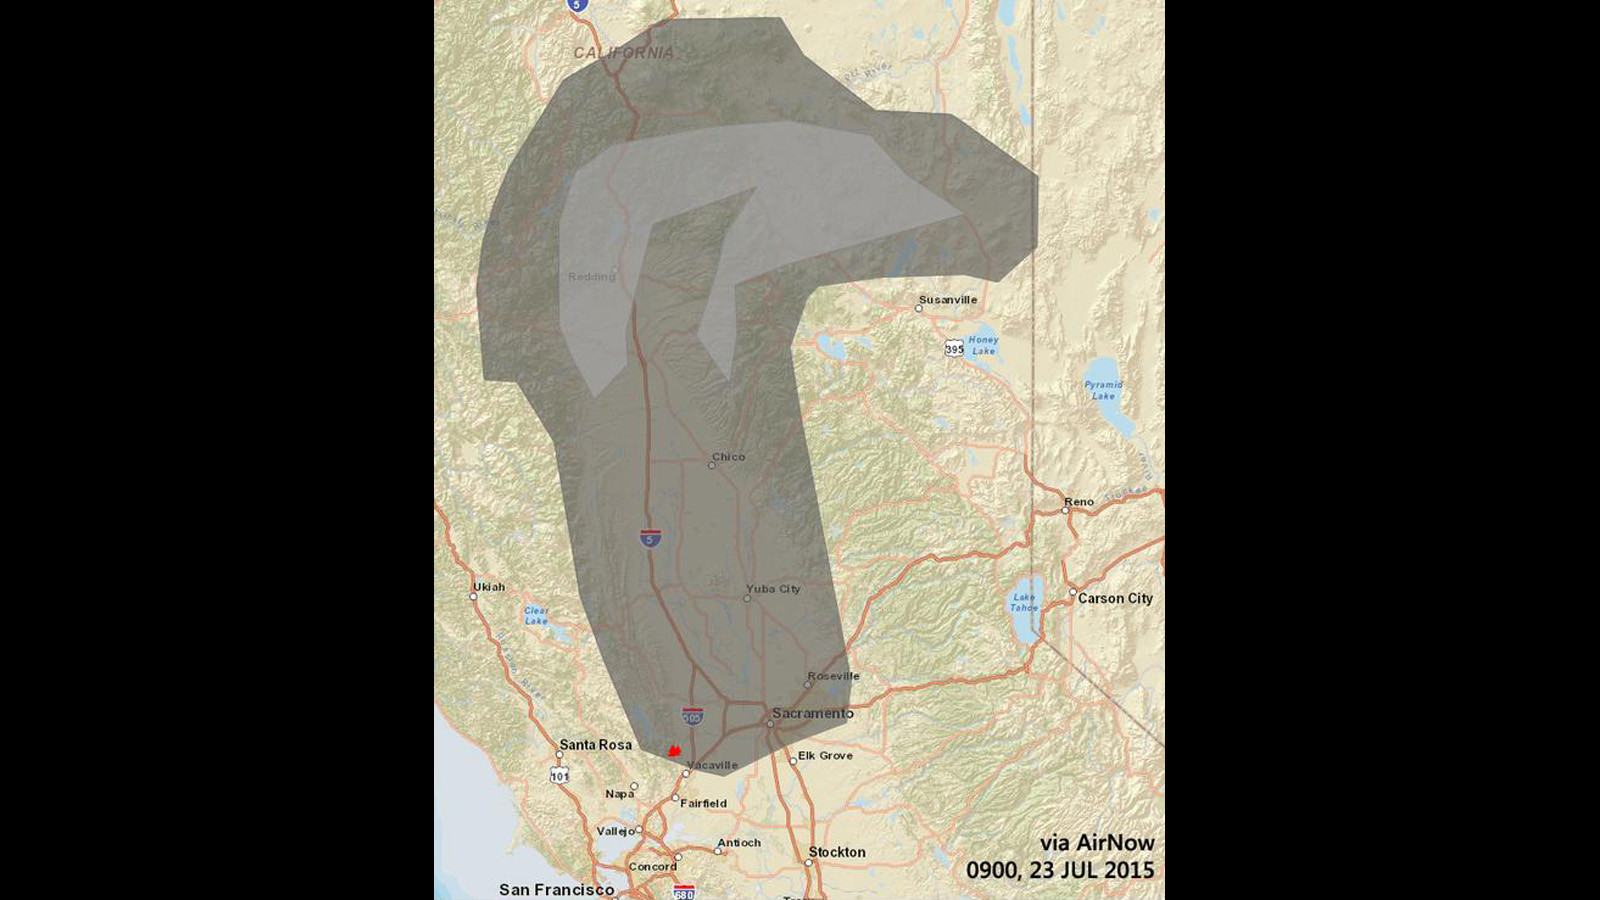 Lake Berryessa Fire Map.Traveling To California Wine Country What You Need To Know About